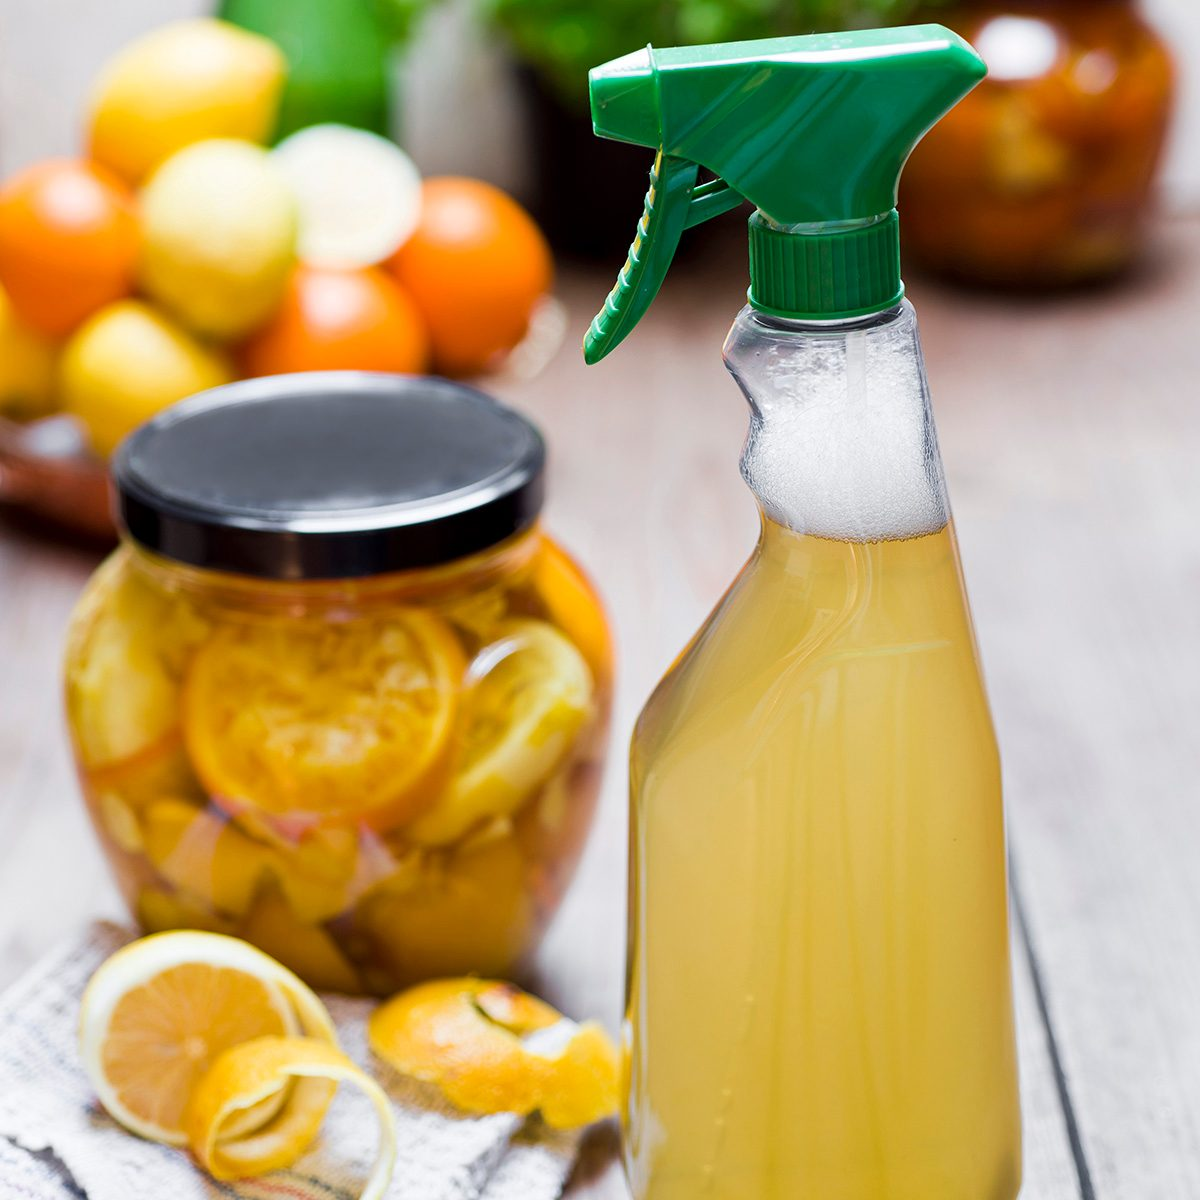 Homemade cleansing agent, vinegar, peels of citrus fruits, ginger and water